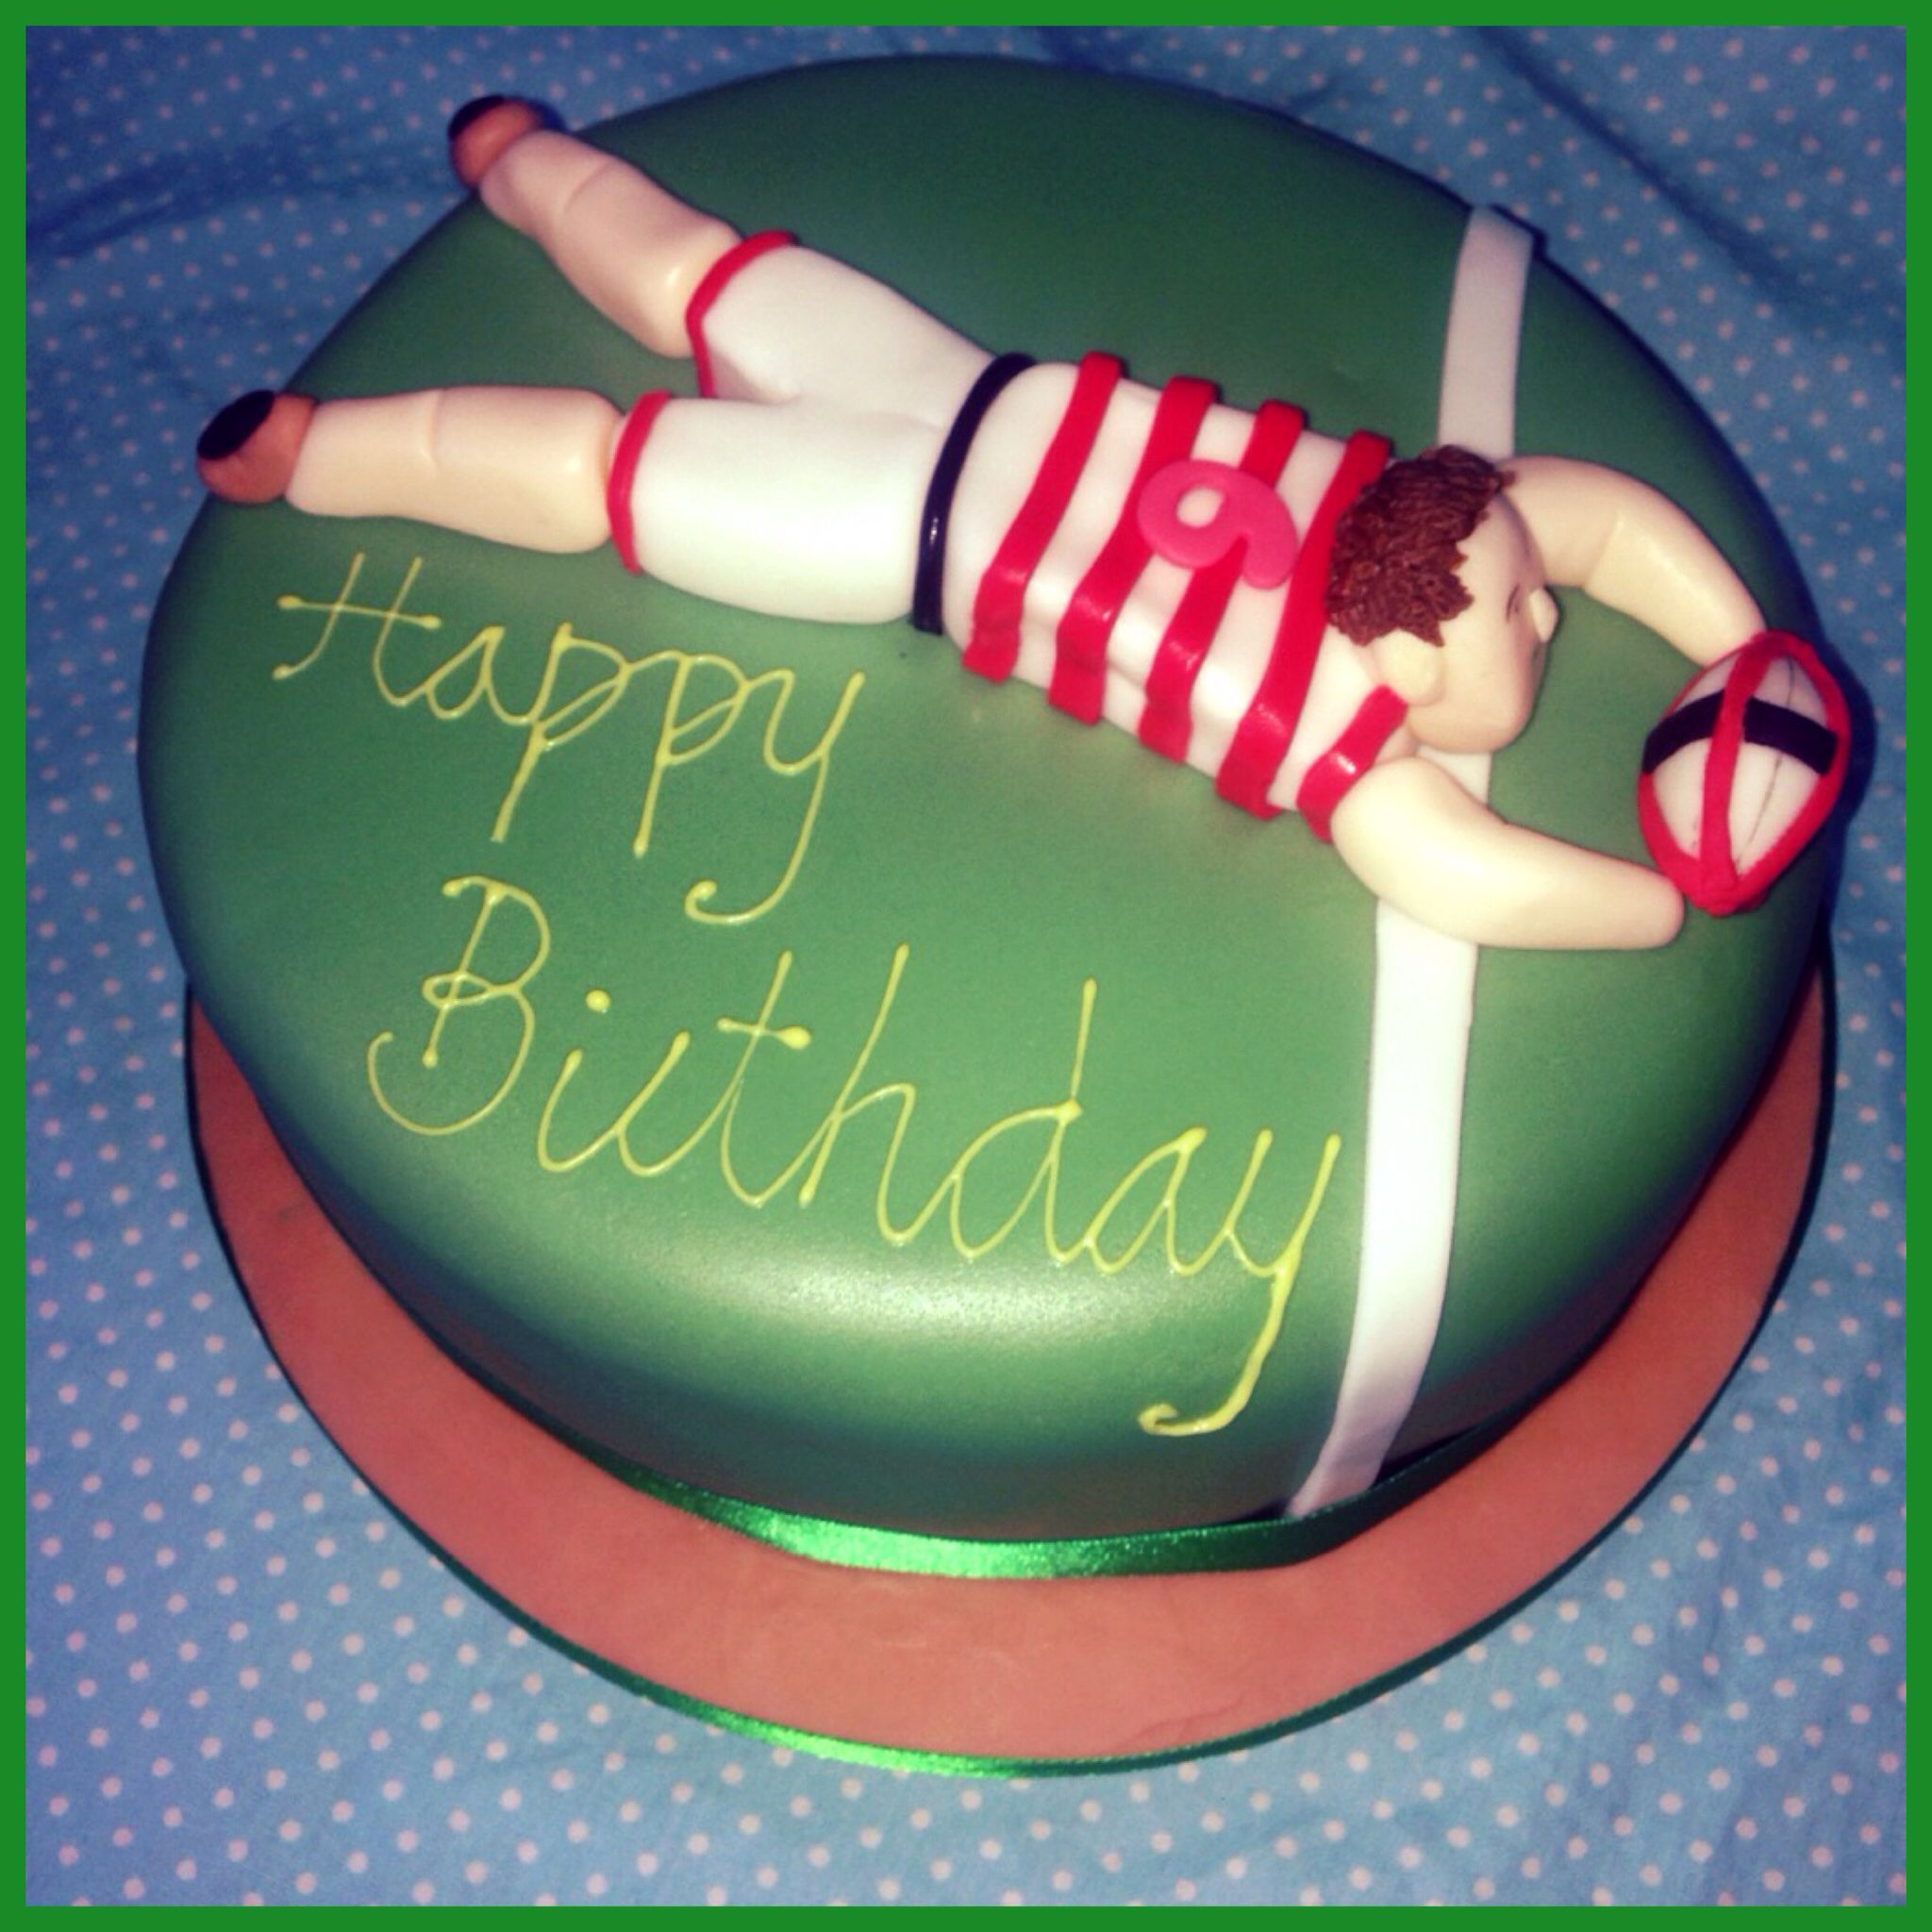 #rugby #cake